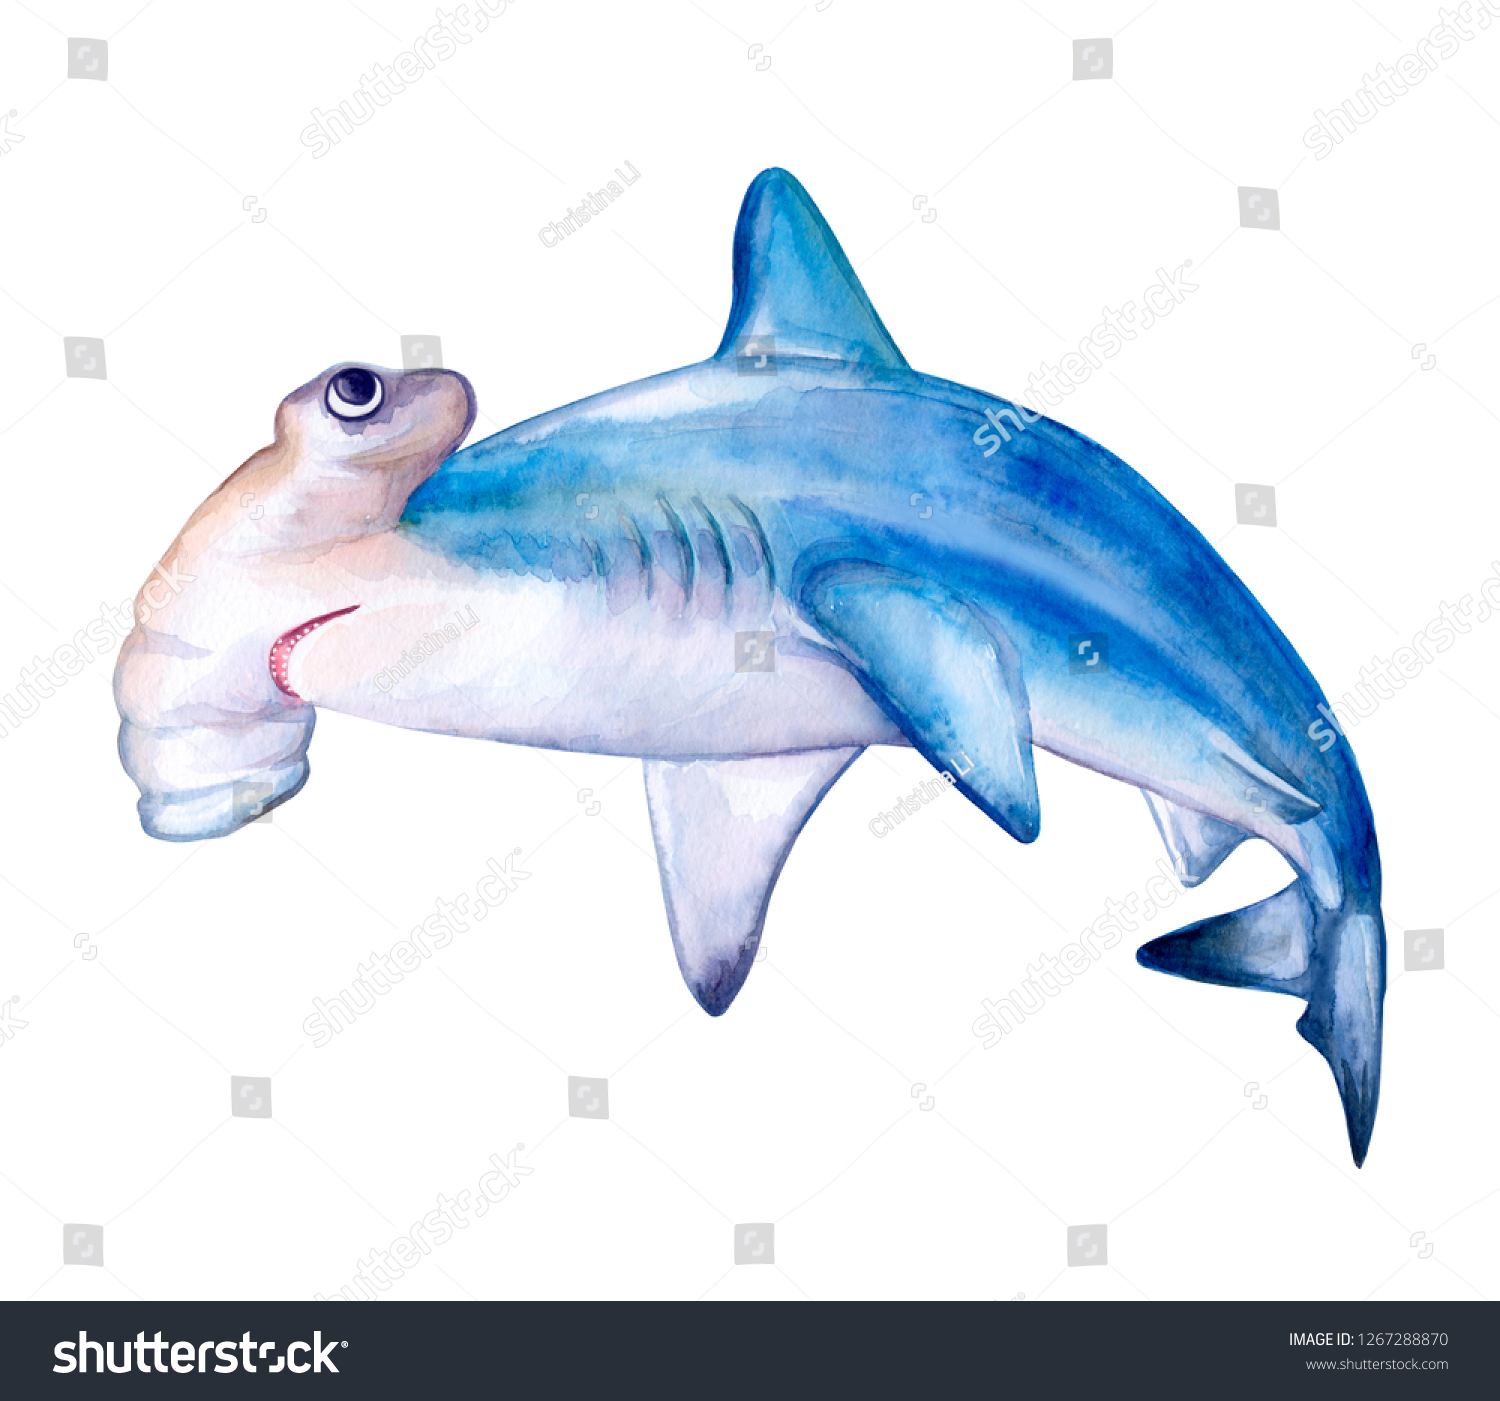 hight resolution of hammerhead shark white death of a shark isolated on a white background watercolor illustration template card clipart close up illustration